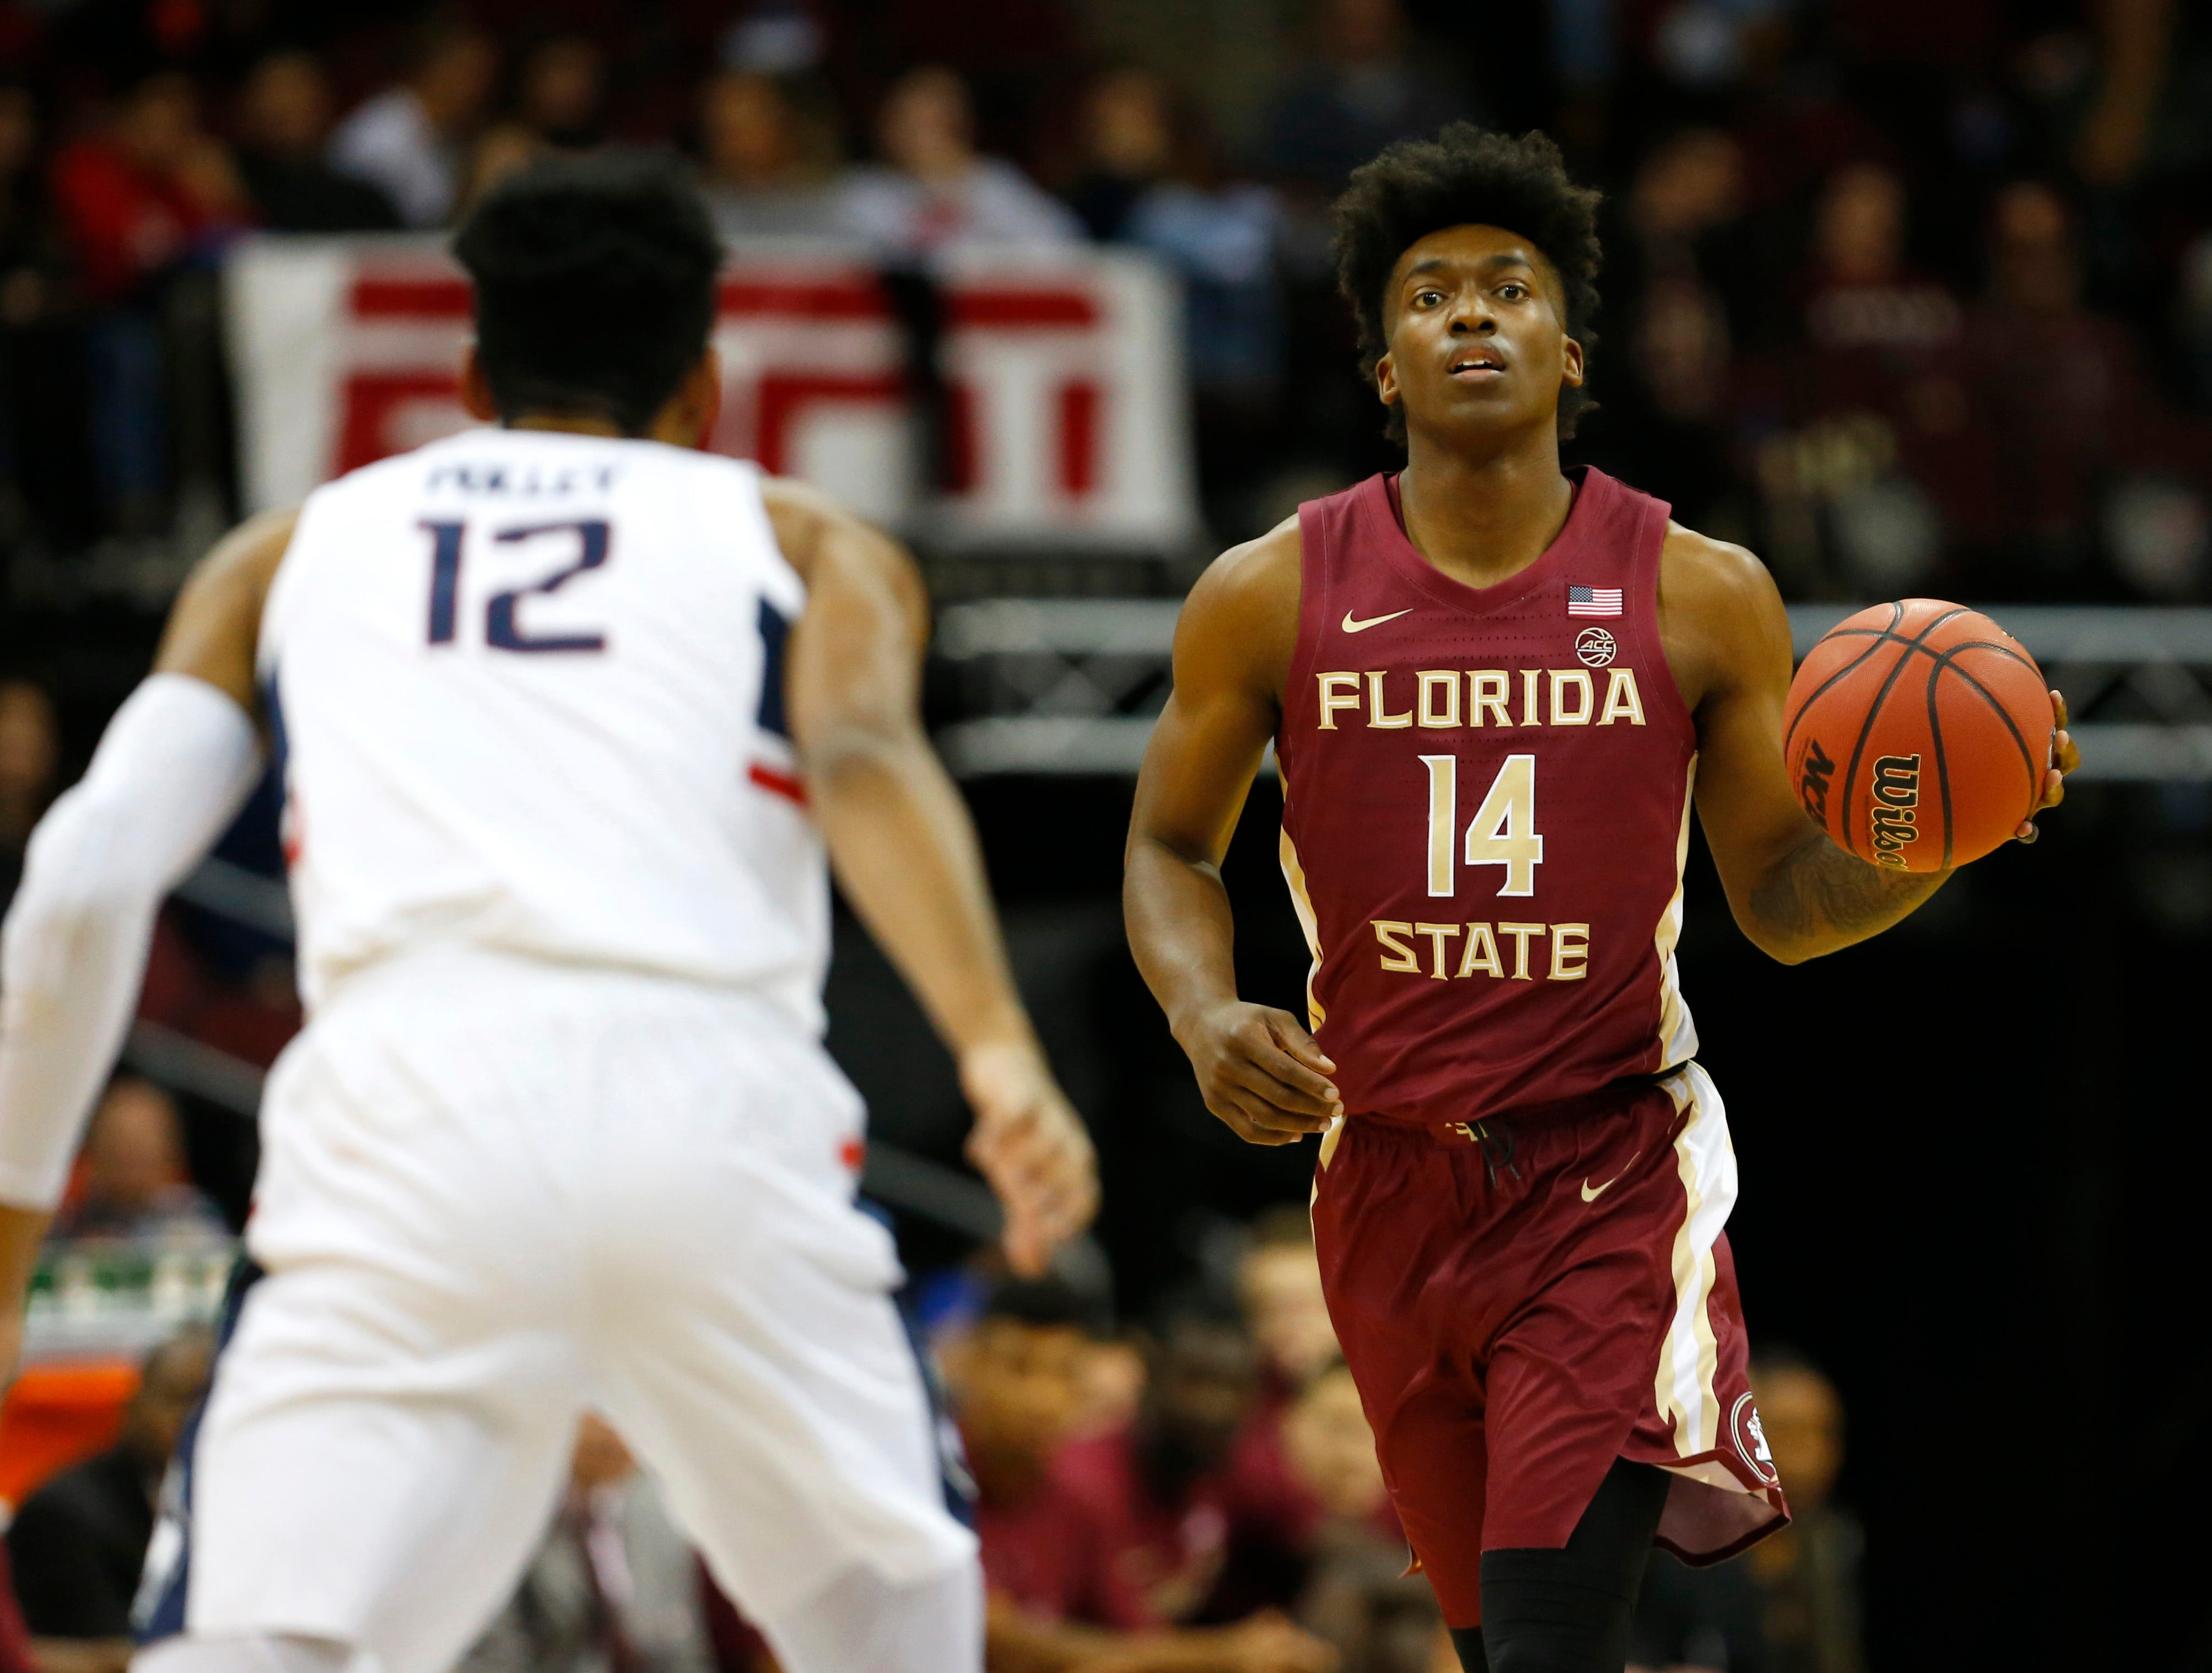 Dec 8, 2018; Newark, NJ, USA; Florida State Seminoles guard Terance Mann (14) handles the ball against Connecticut Huskies forward Tyler Polley (12) during the first half at Prudential Center. Mandatory Credit: Noah K. Murray-USA TODAY Sports